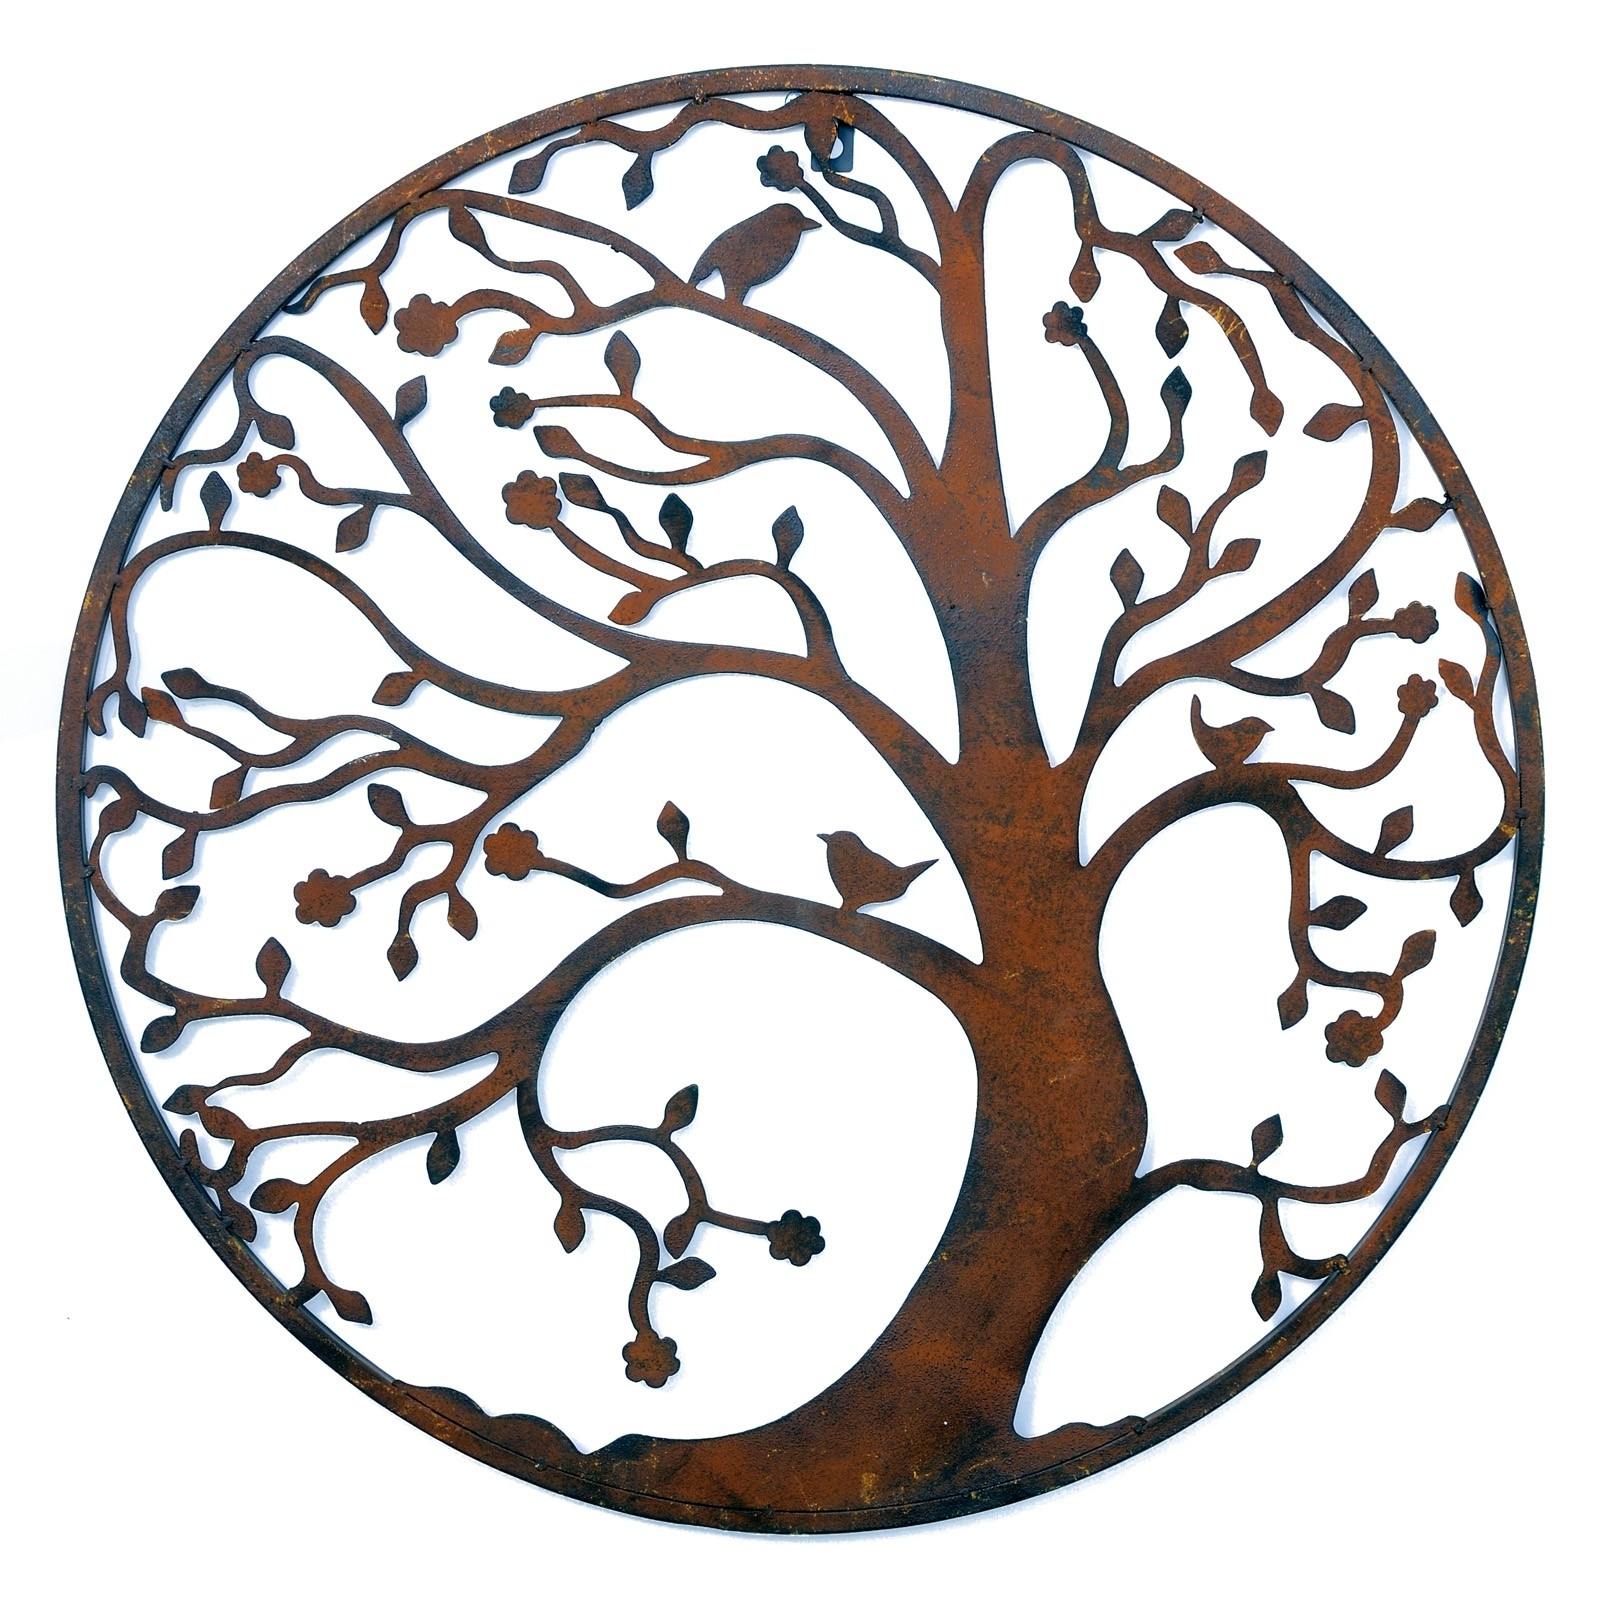 Large Round Wall Art Regarding Well Known Wall Art Designs: Rusted Classic Design Tree Leaf Branch Birds (View 4 of 15)